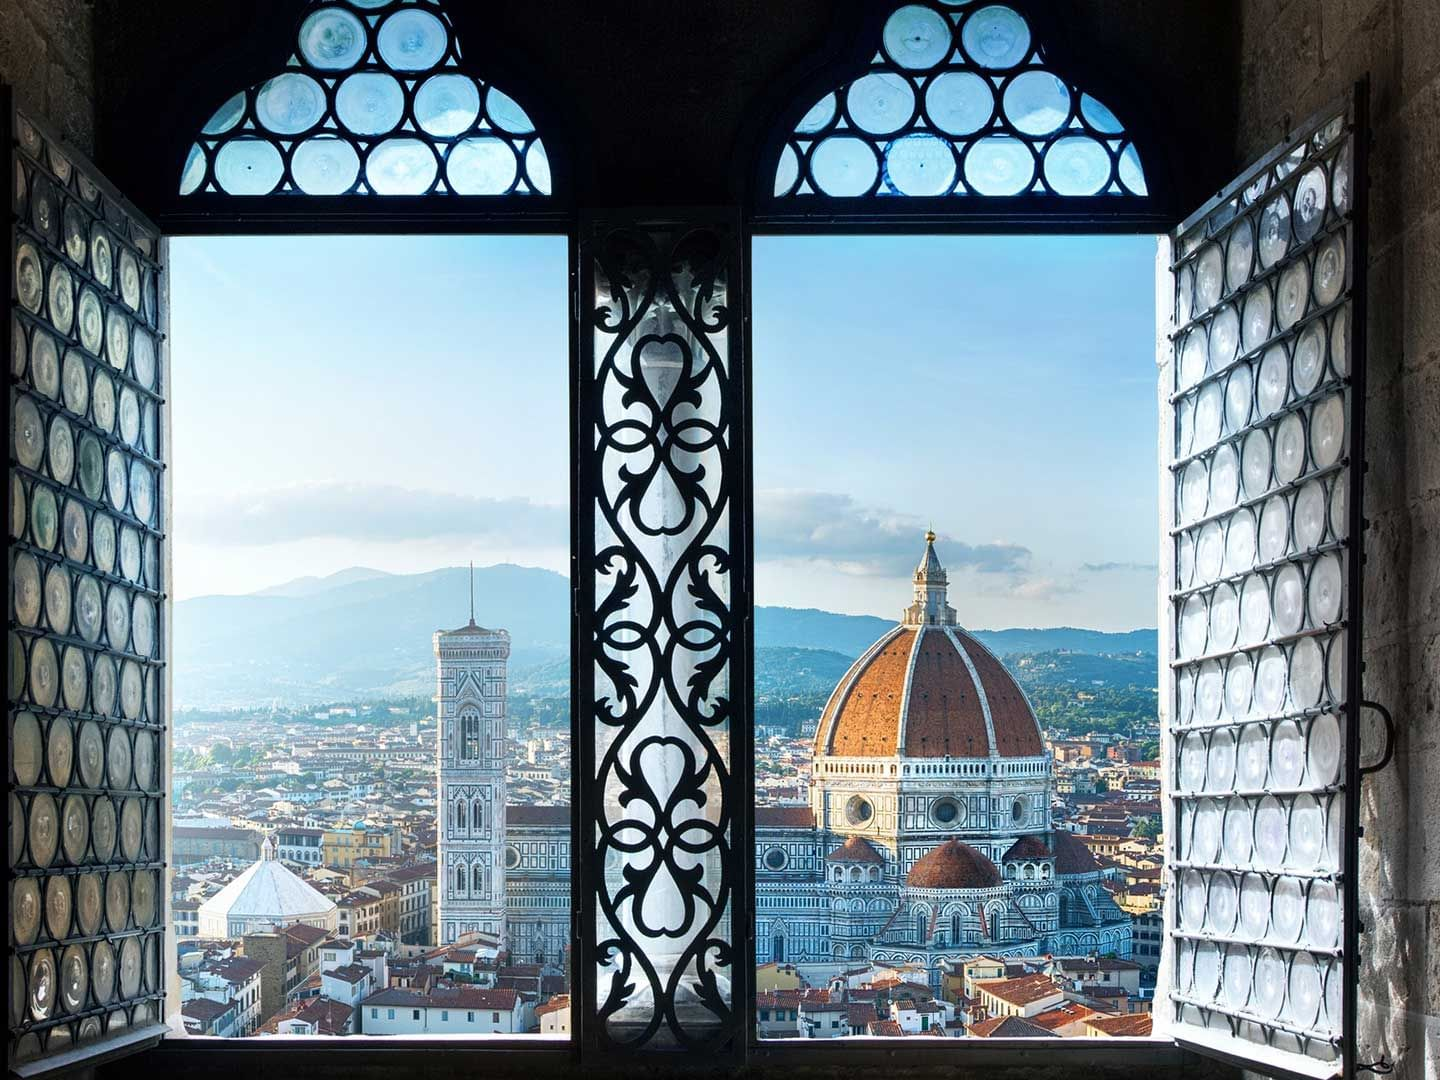 A Weekend in Florence? Where to Go